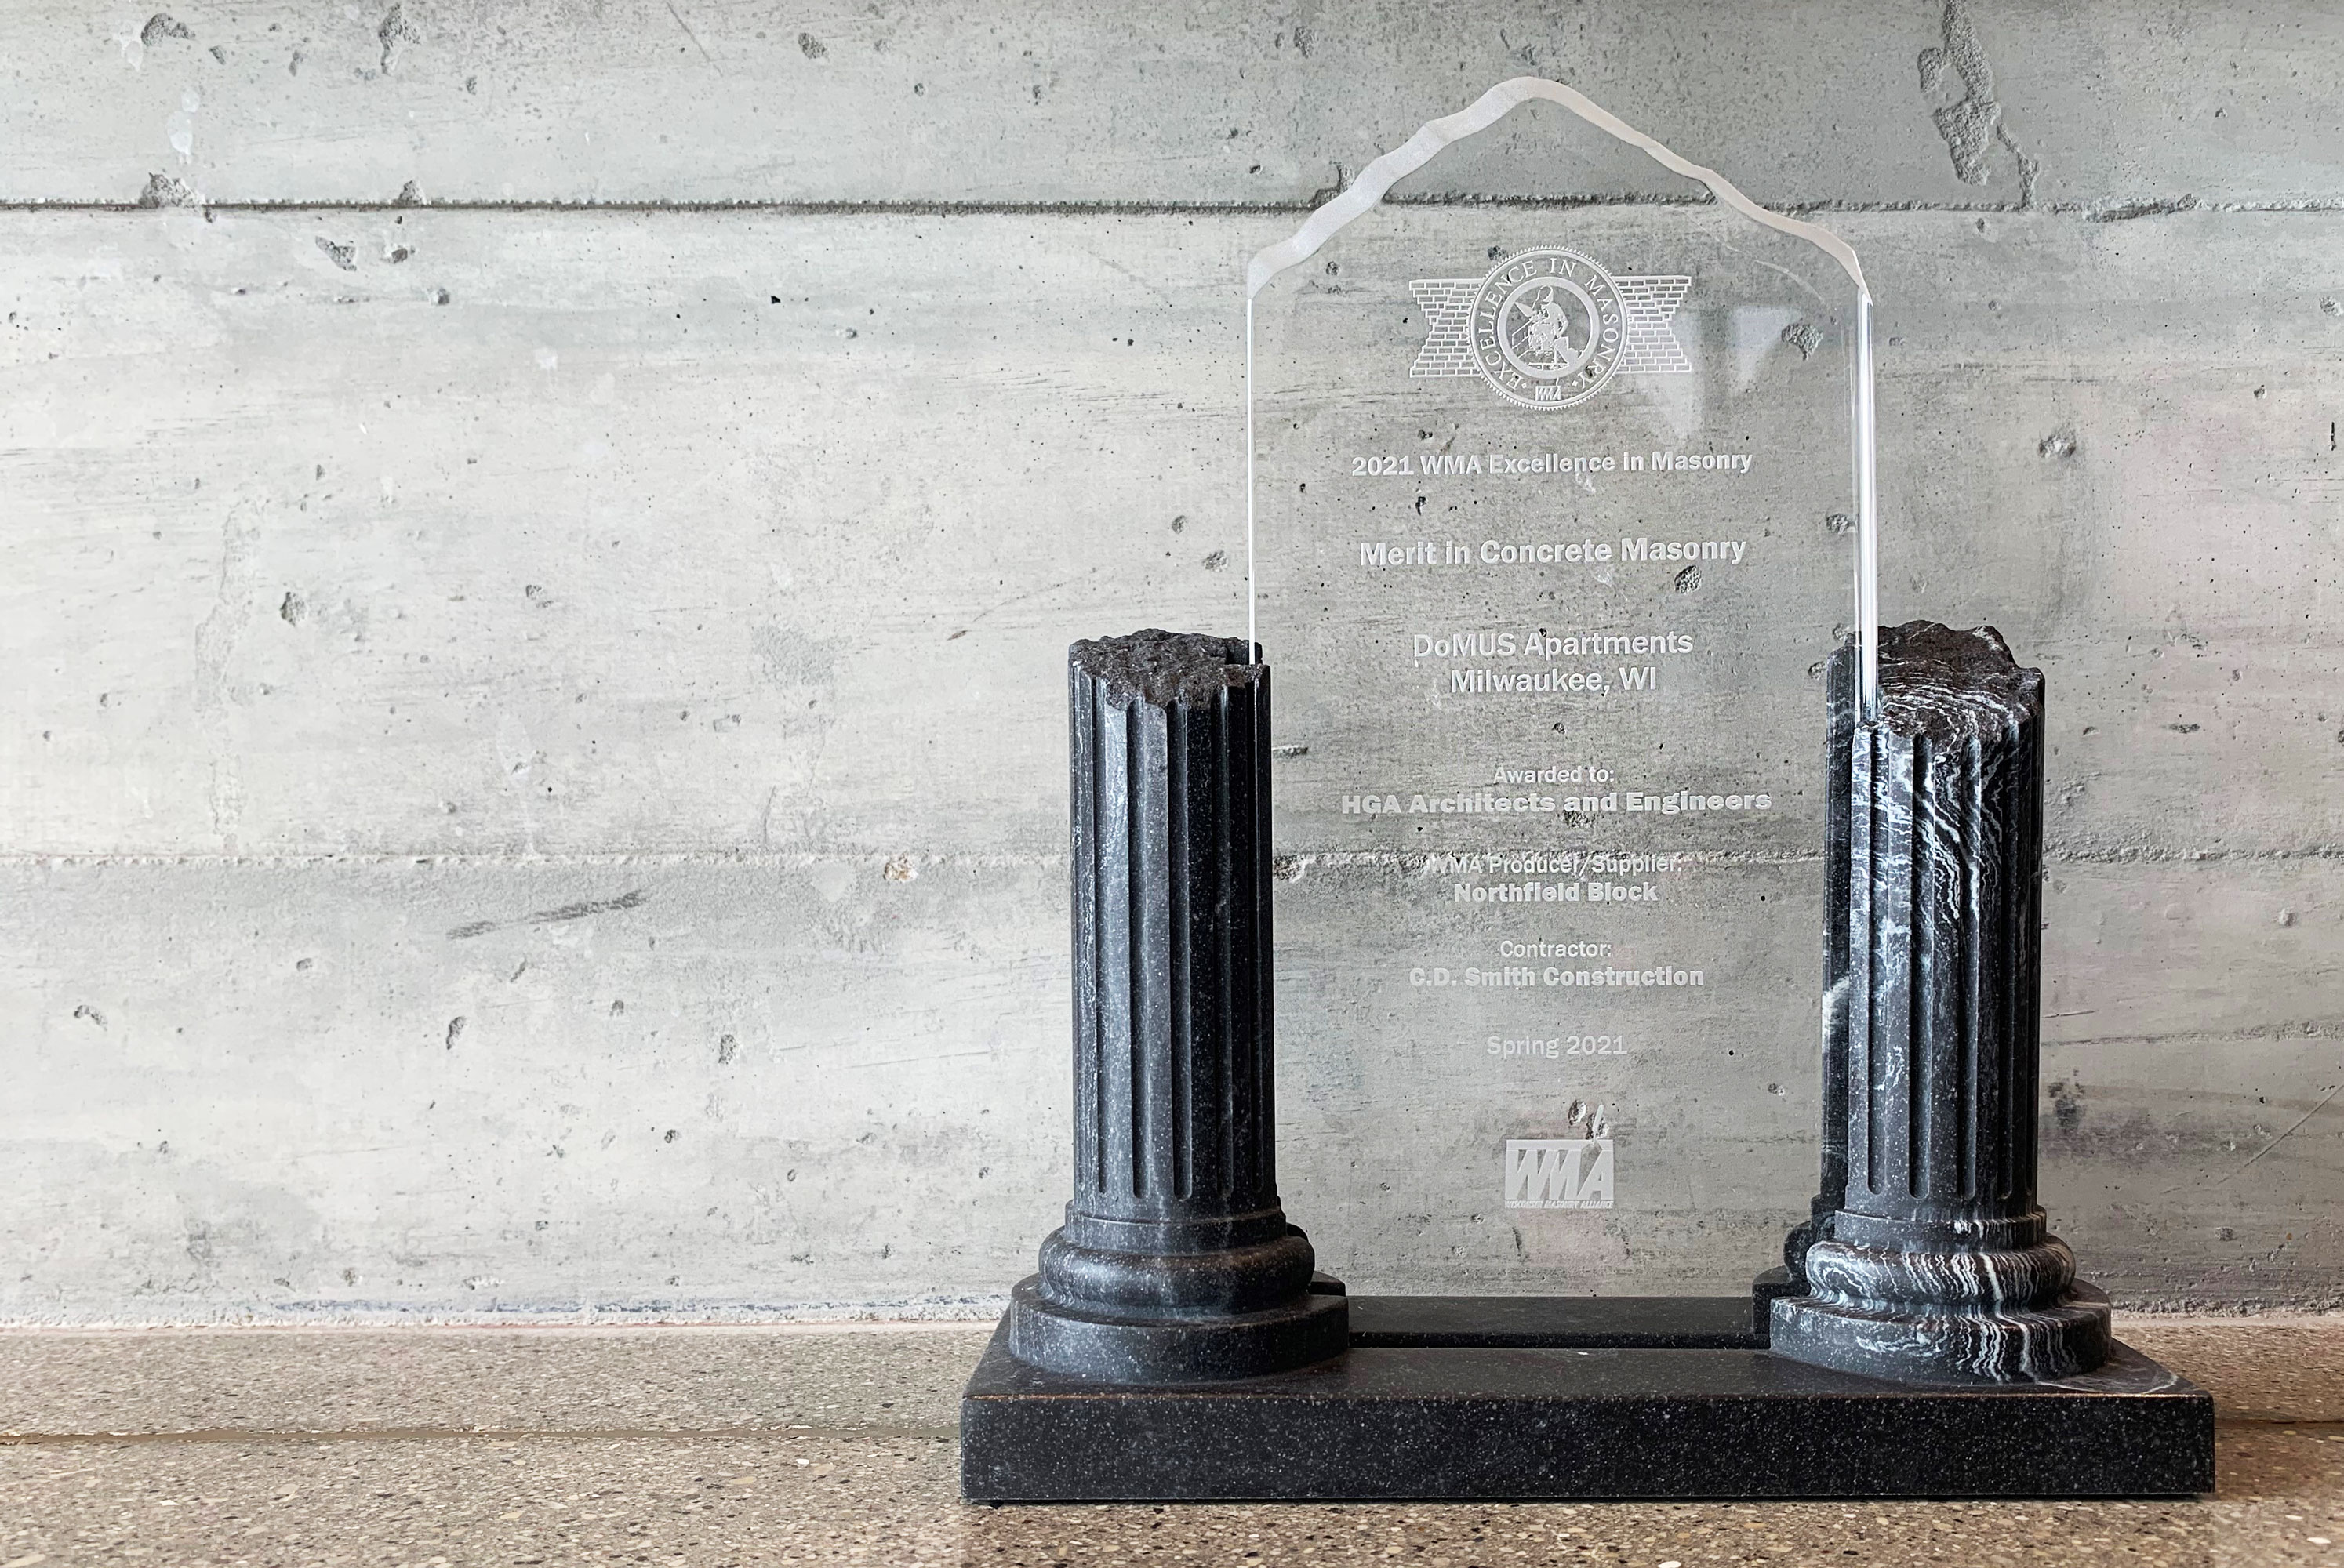 Picture of Merit in Concrete Masonry Award from the Wisconsin Masonry Alliance for DoMUS Apartments Construction Project